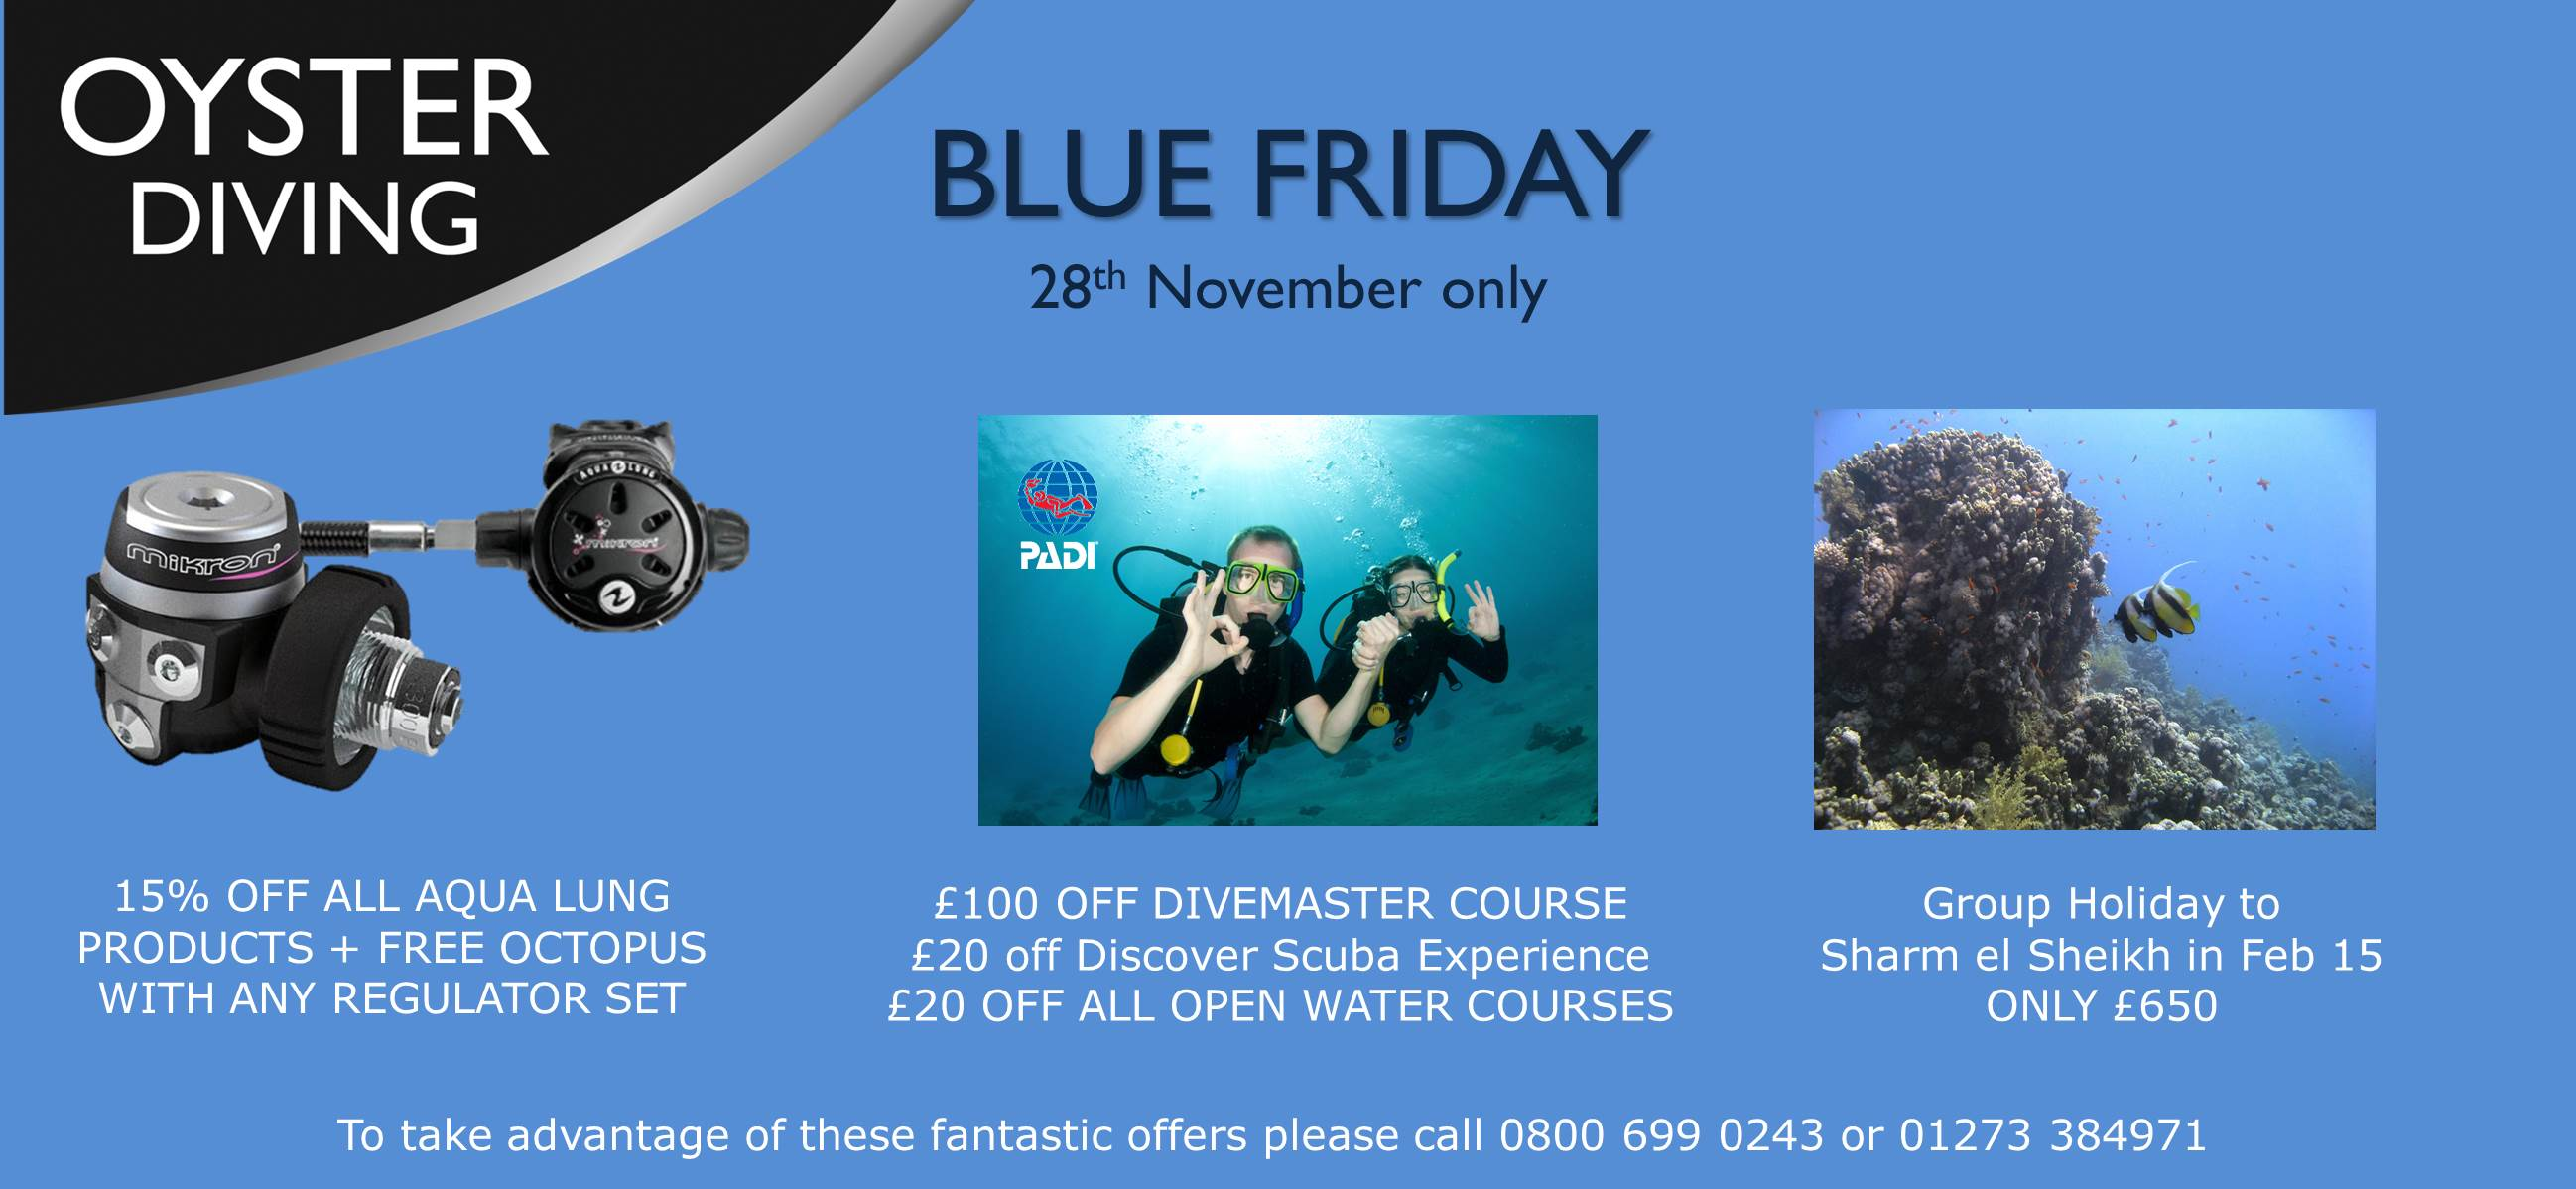 Oyster-Diving-Blue-Friday (3)